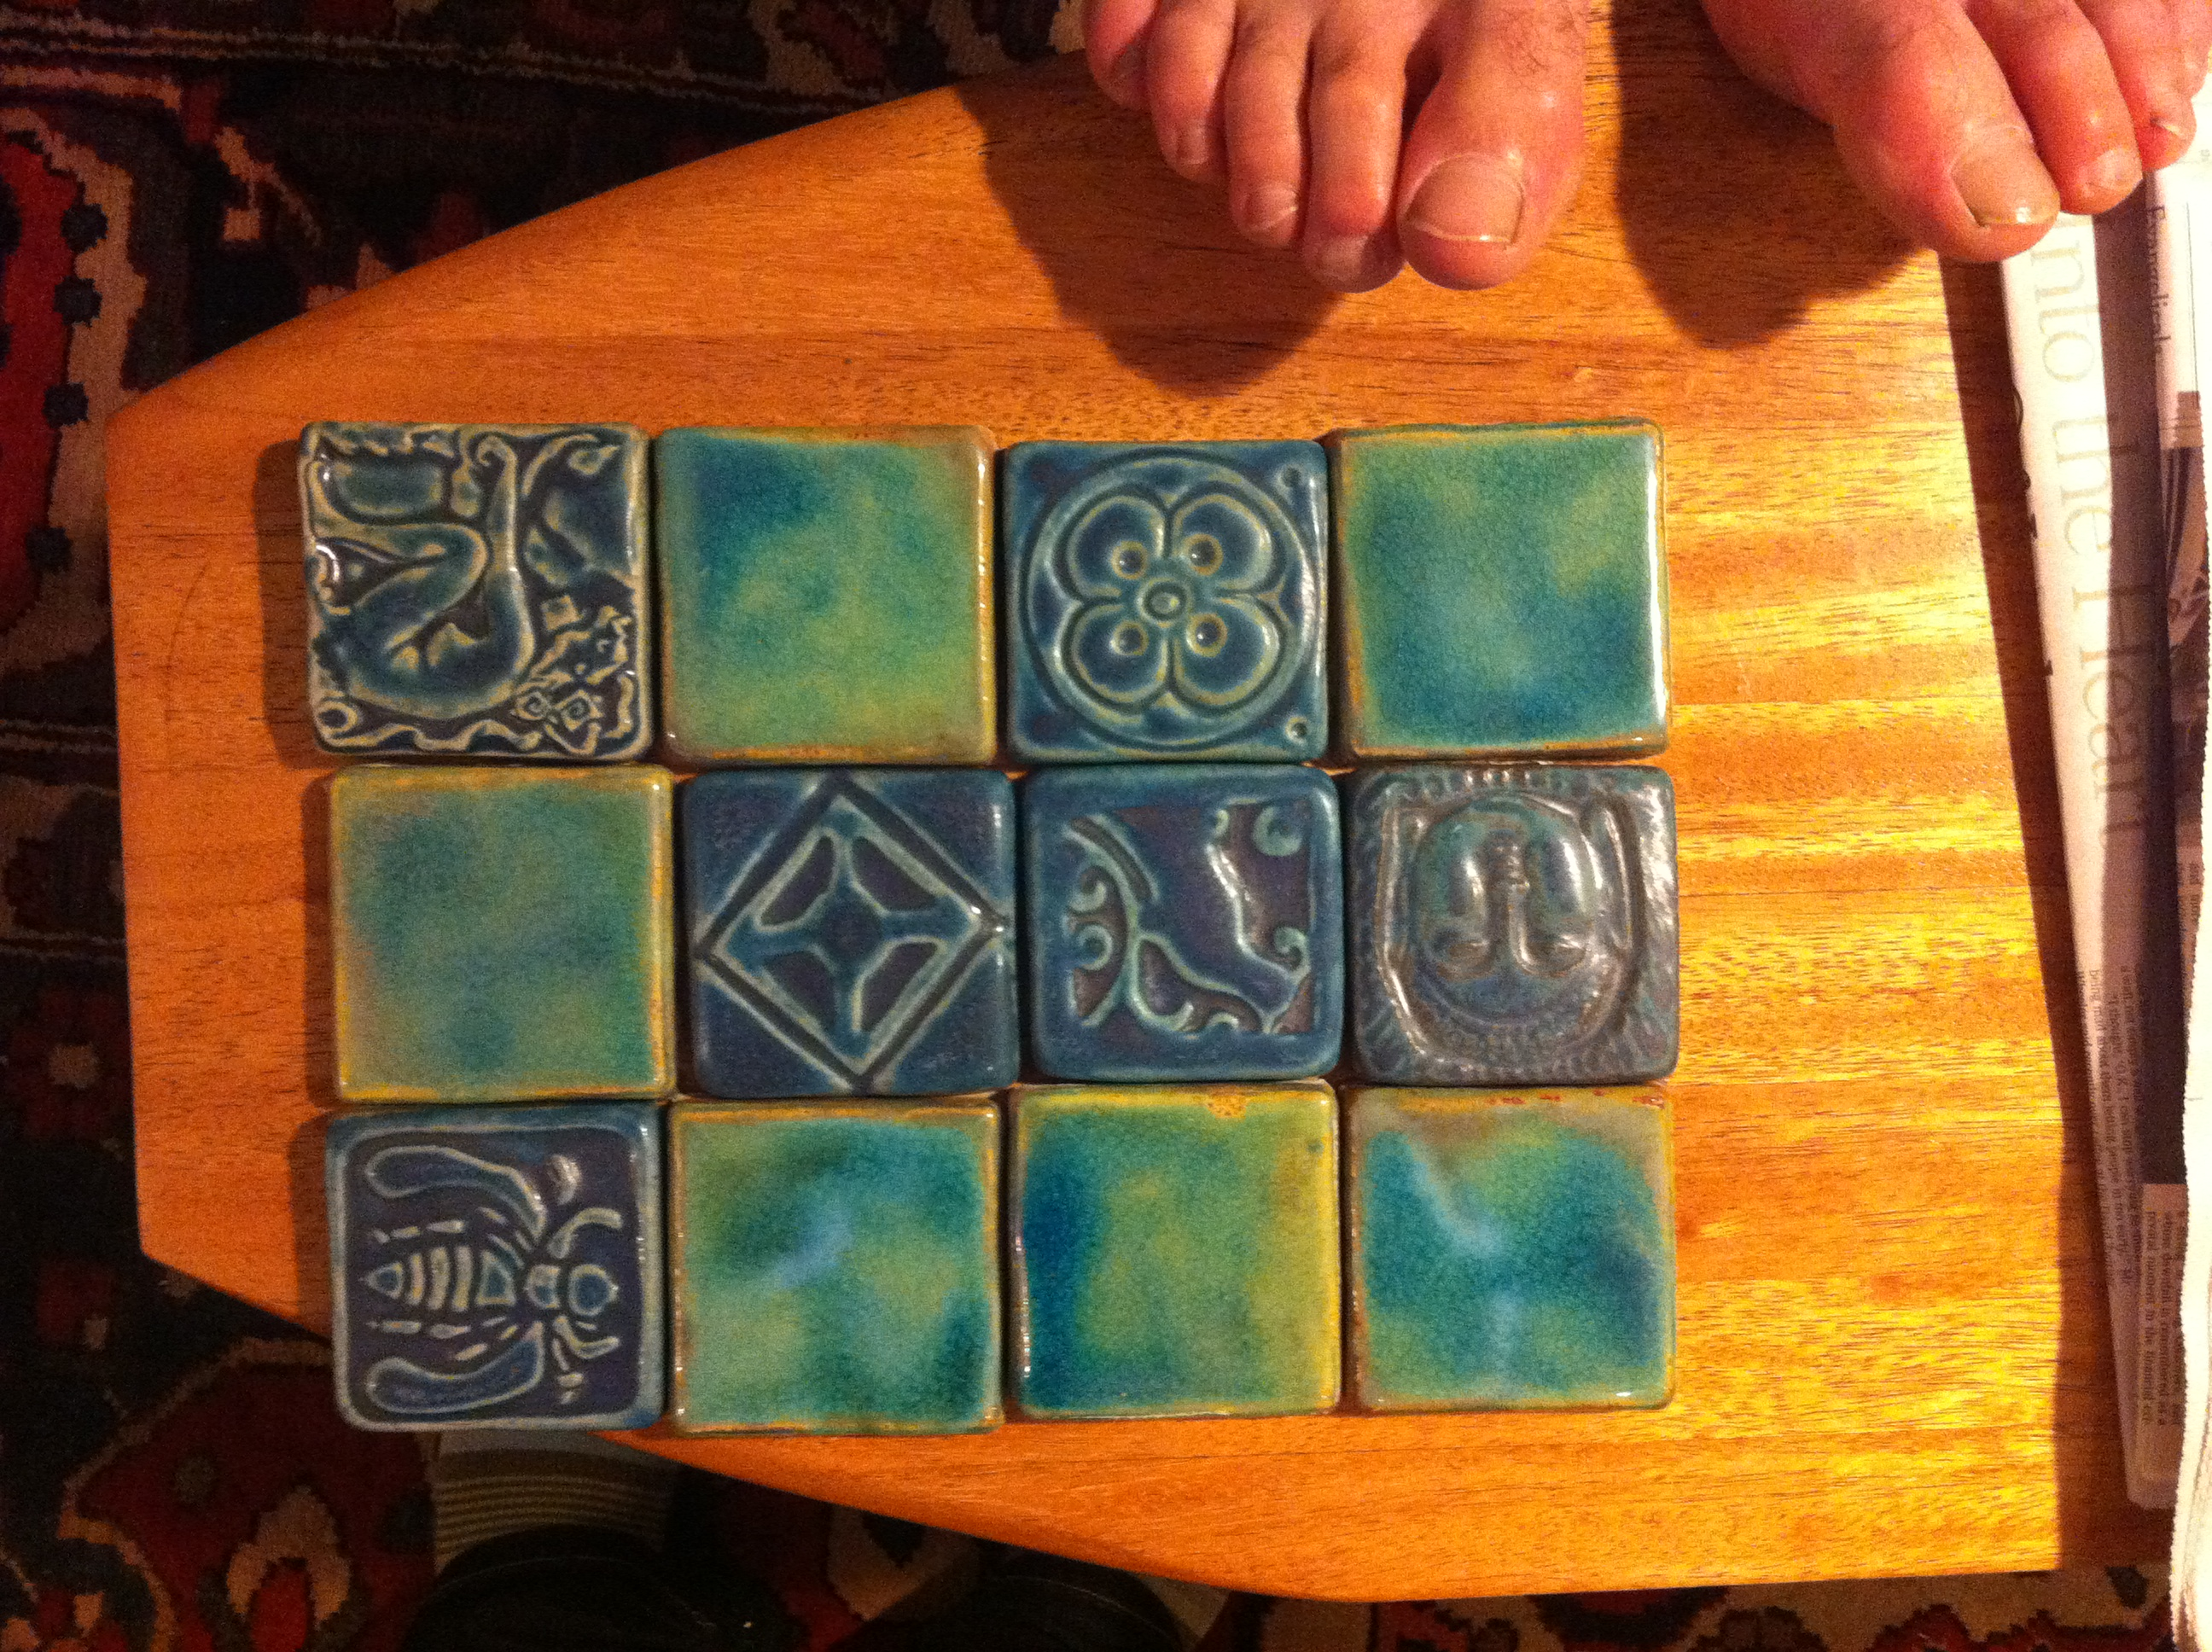 Pewabic tiles floor and decorations gallery floor and decorations pewabic tiles from detroit deedsdesign we shiifo dailygadgetfo Choice Image